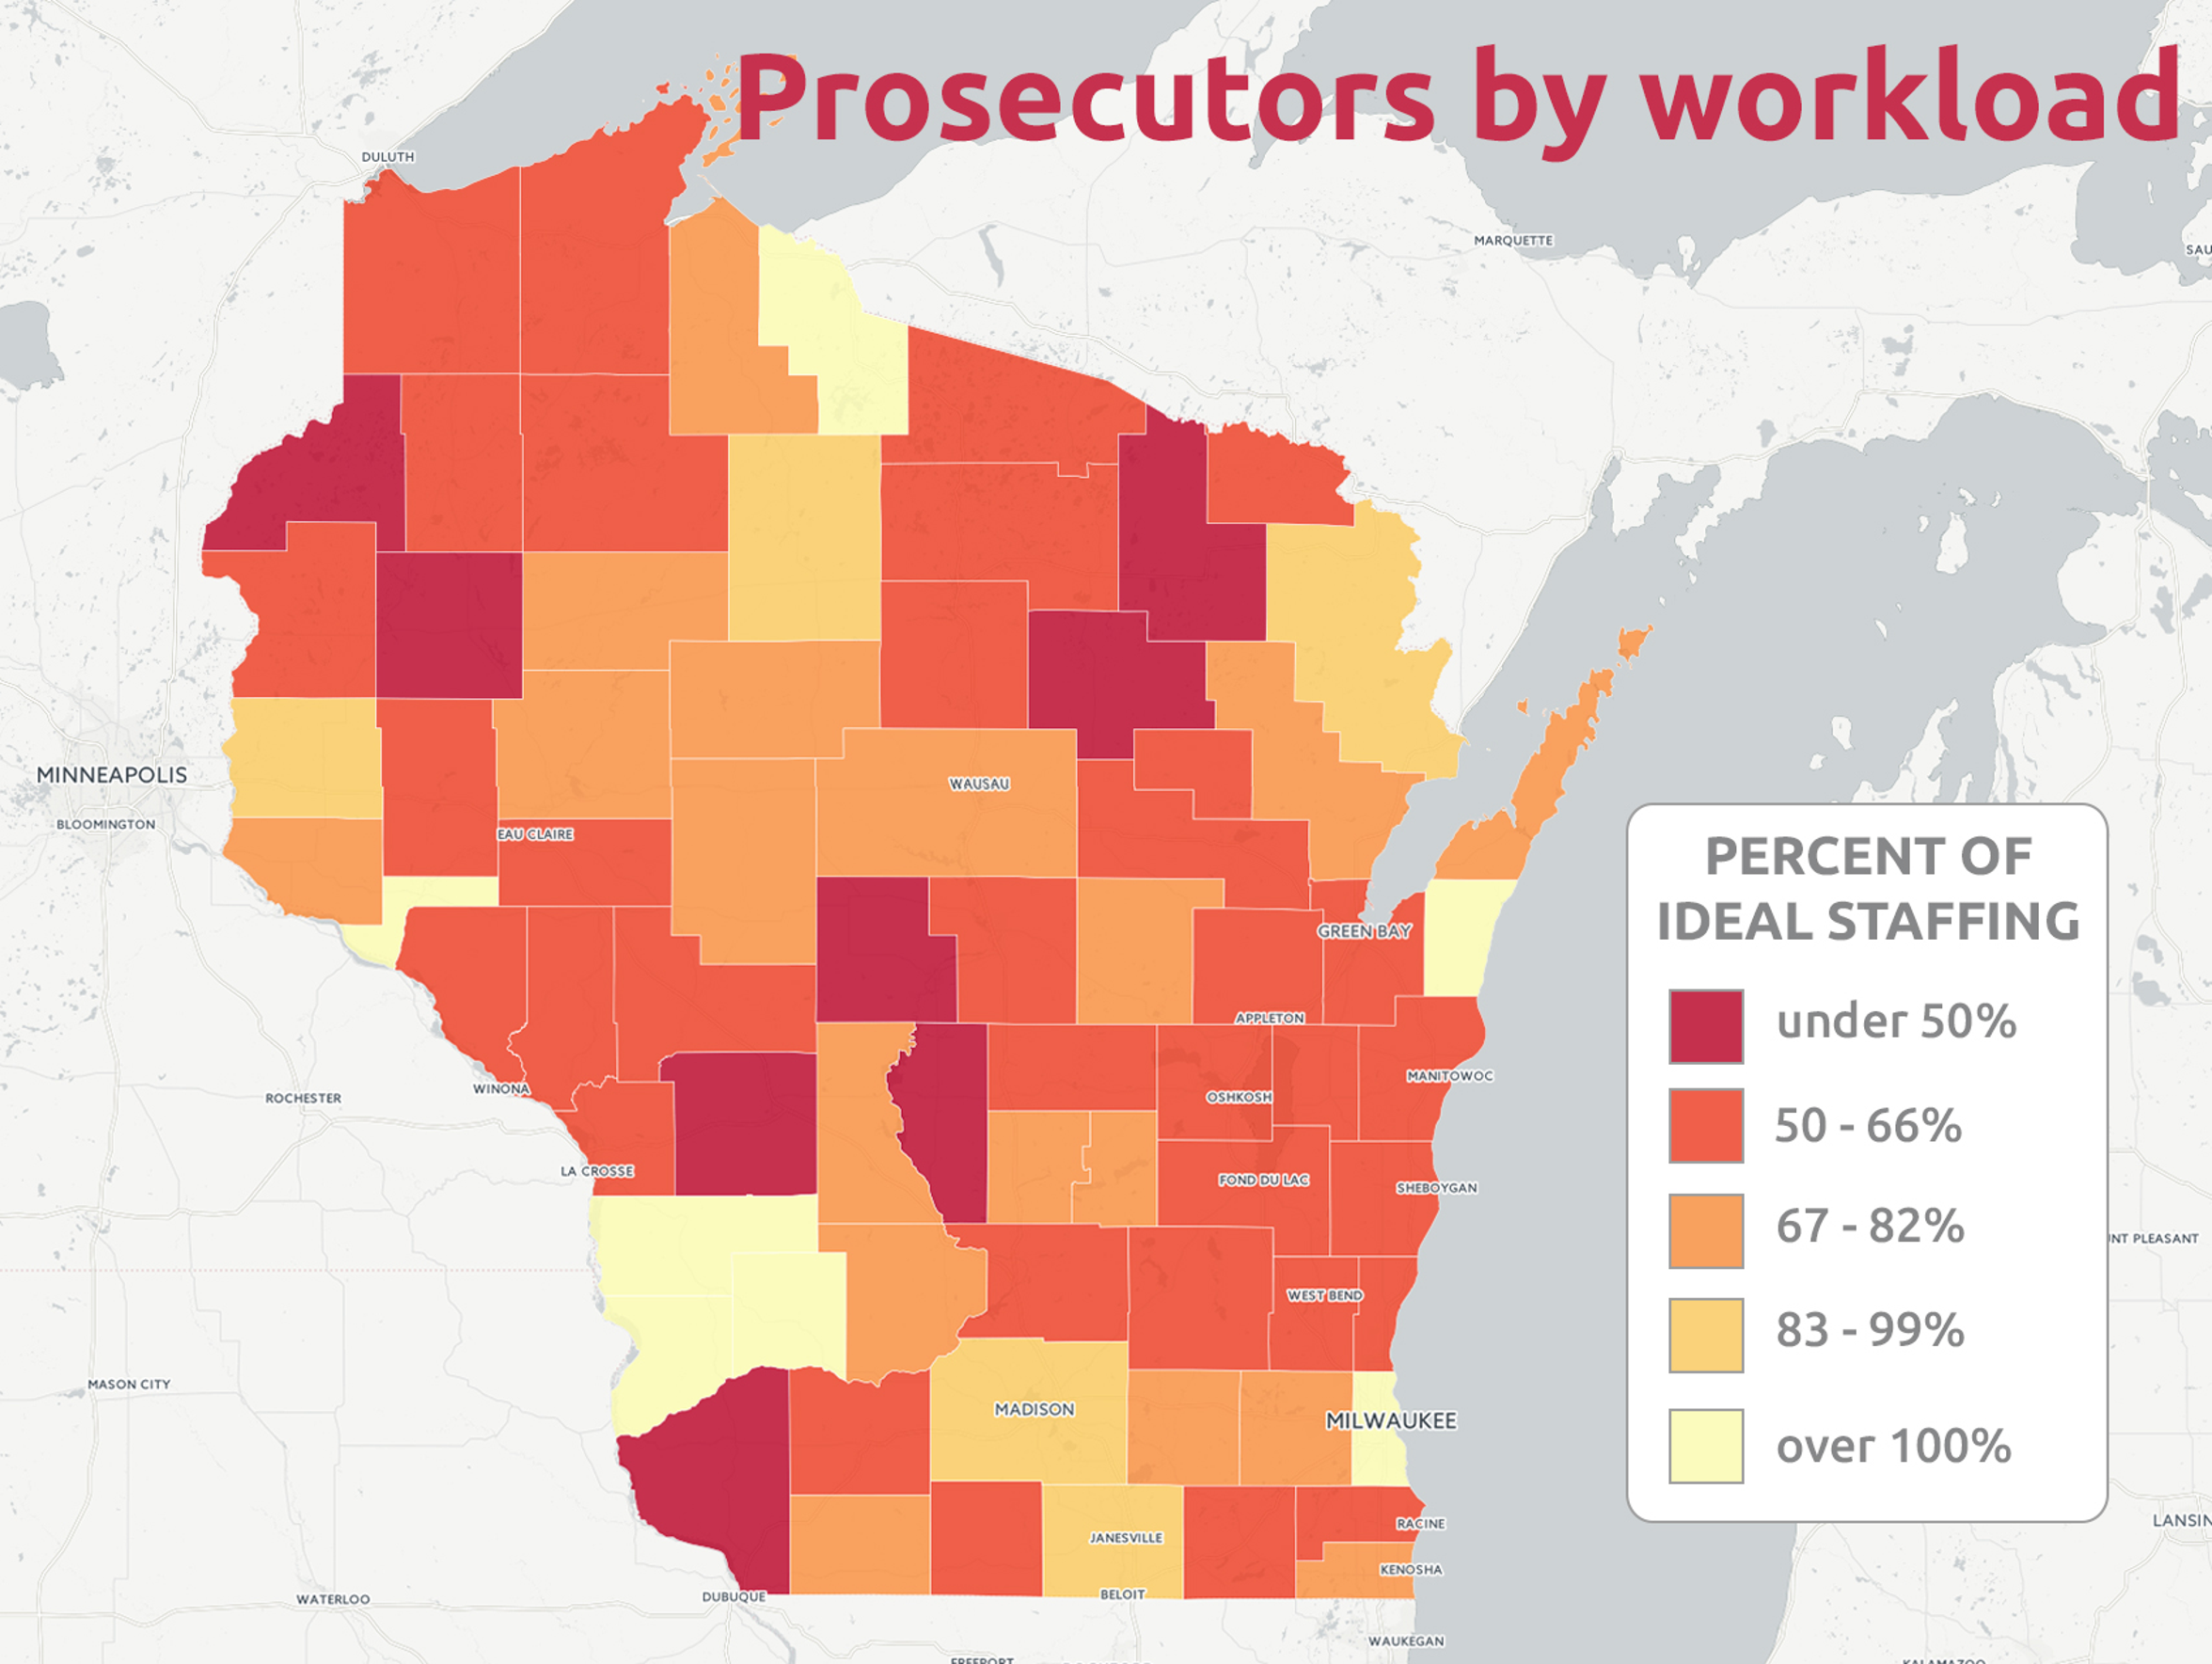 The percent of ideal prosecutor staffing across Wisconsin